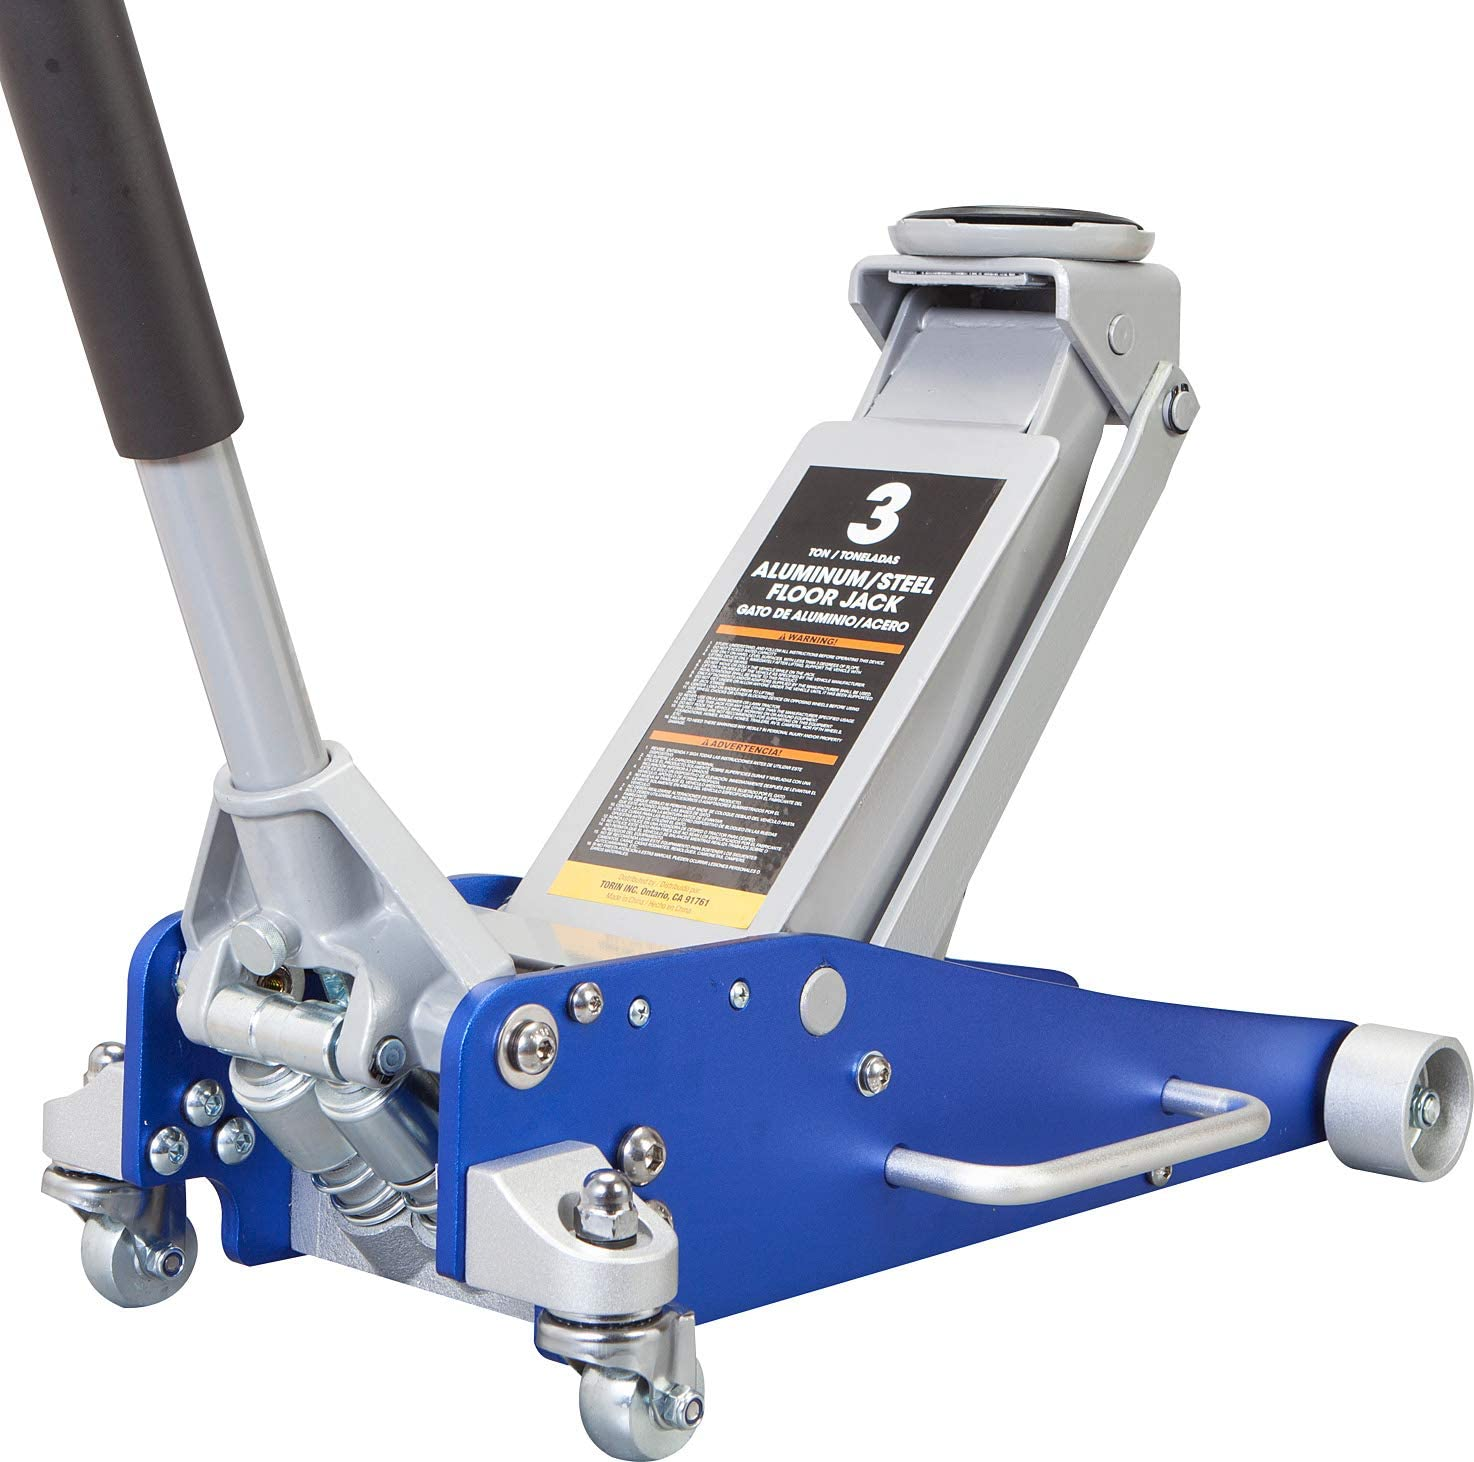 6,000 lb 3 Ton Blue Capacity TCE AT830011LU Torin Hydraulic Low Profile Aluminum and Steel Racing Floor Jack with Dual Piston Quick Lift Pump